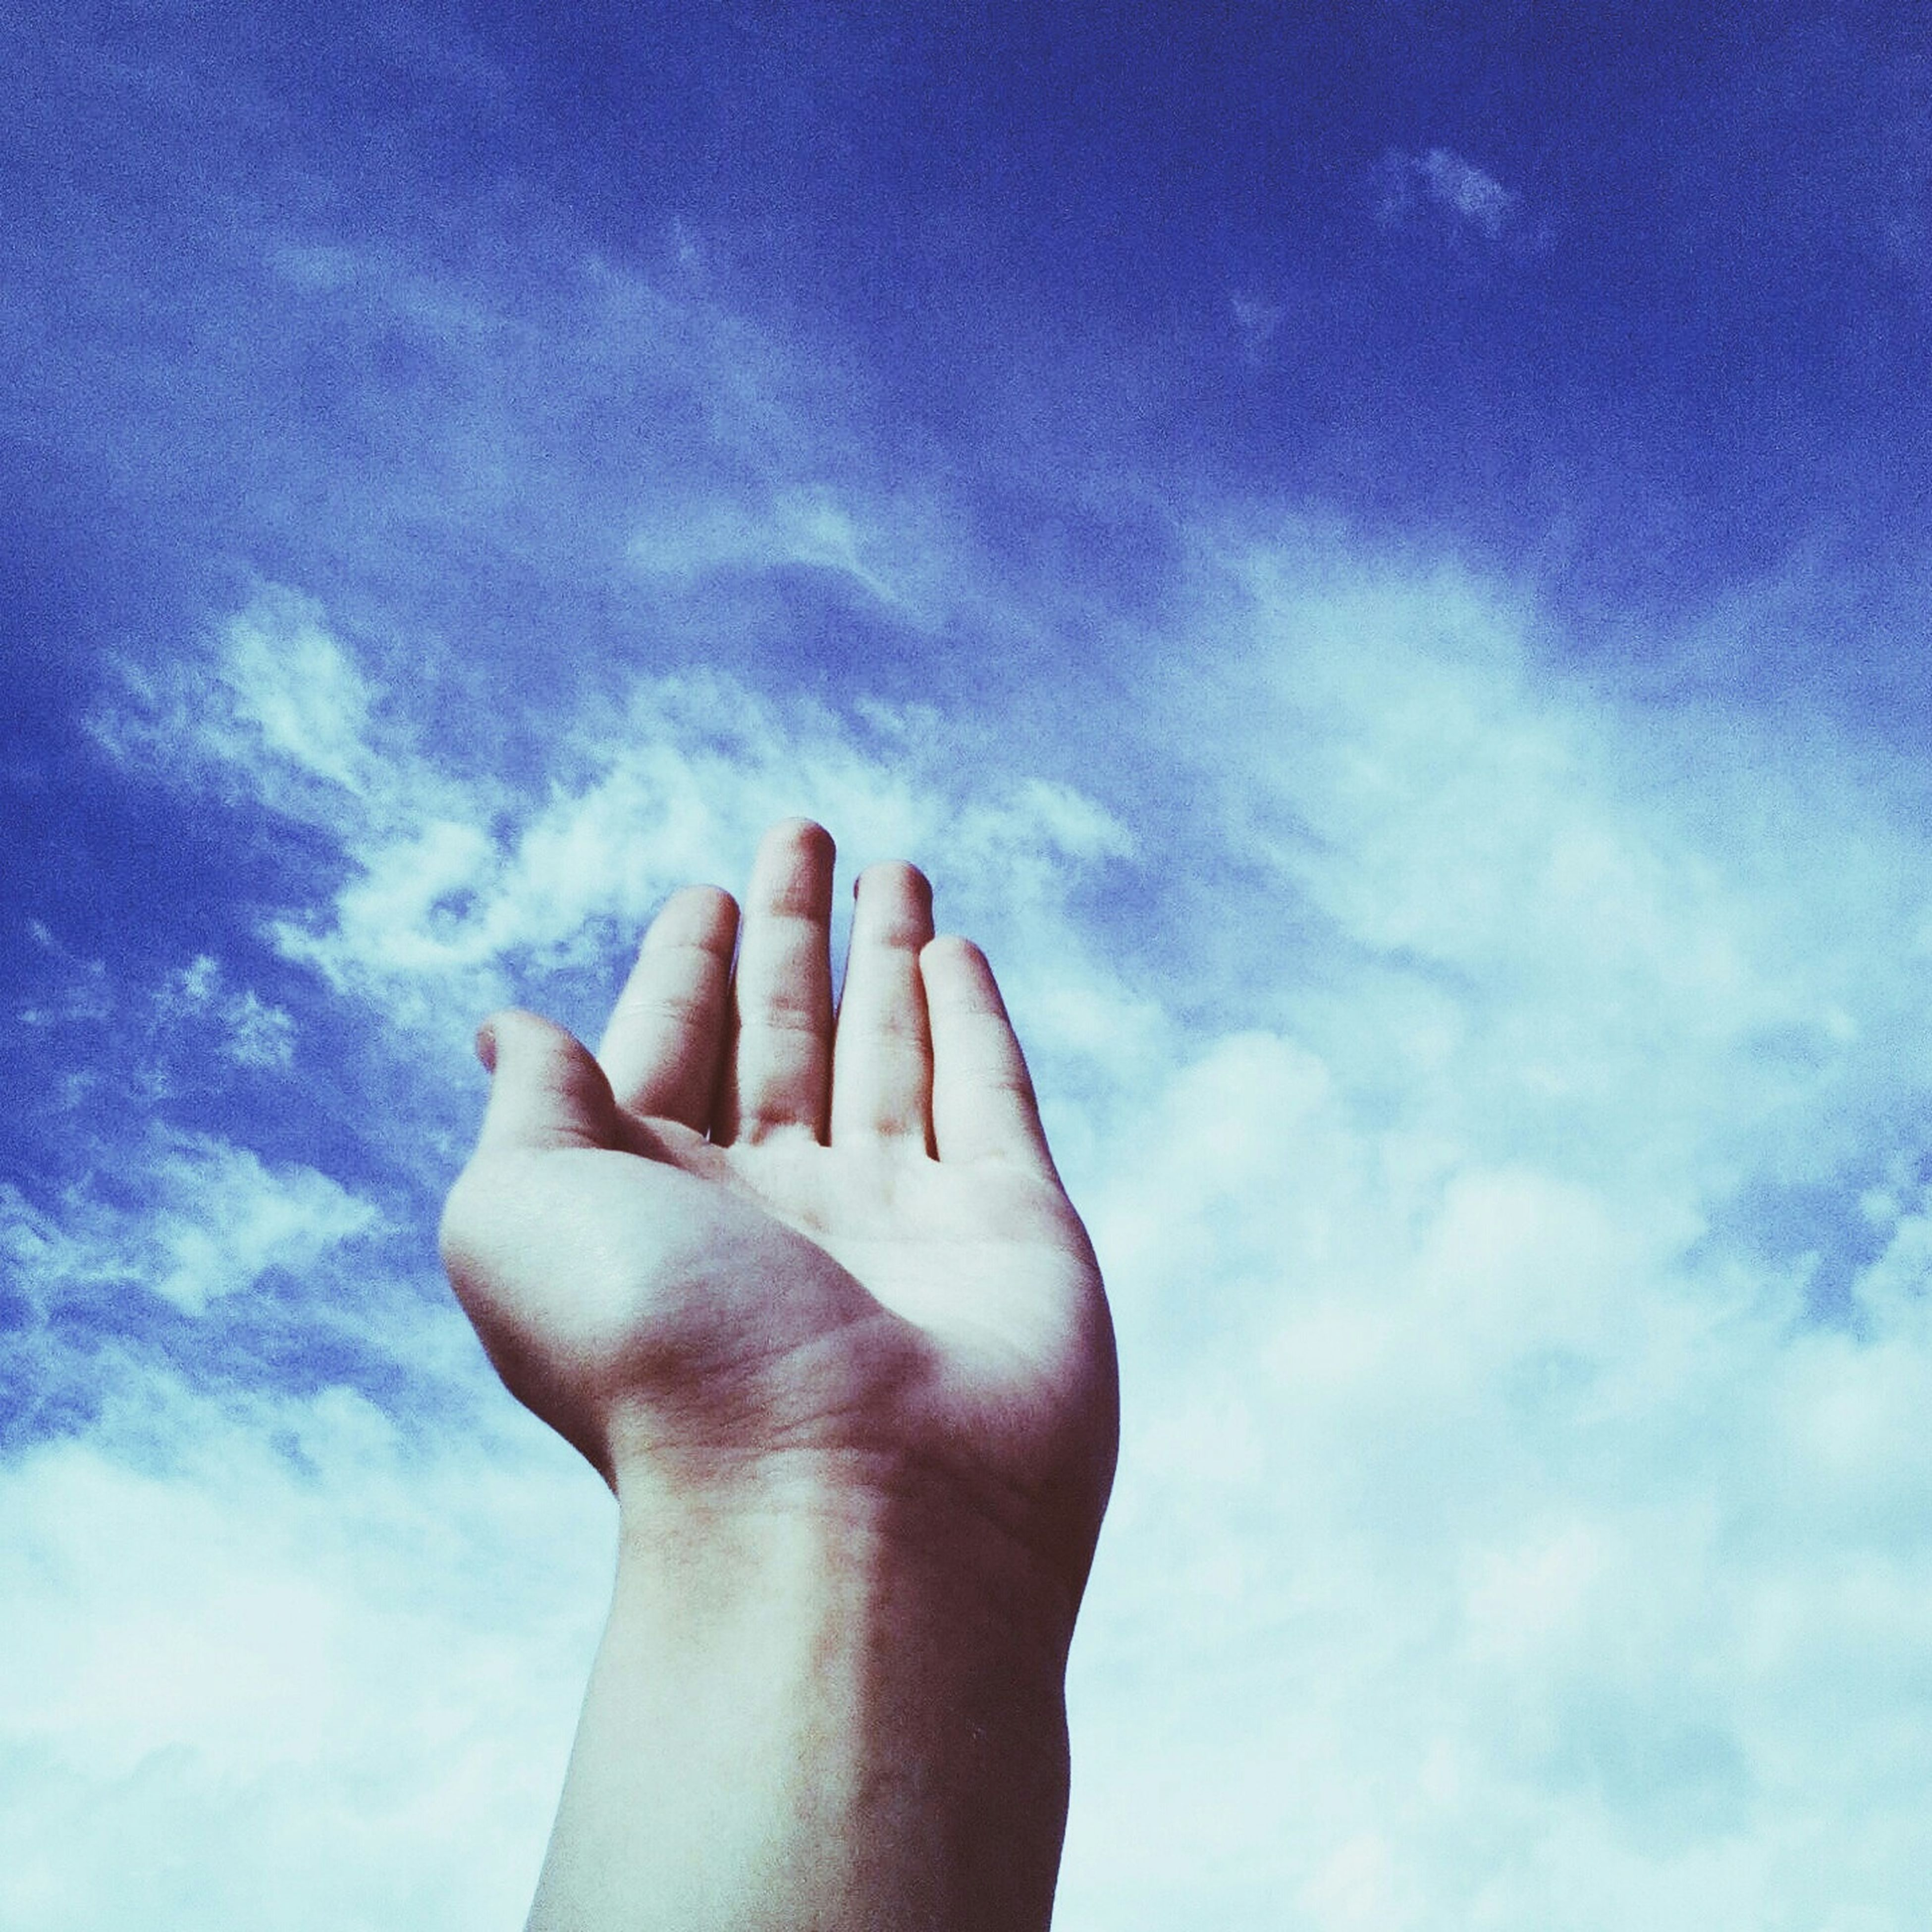 person, part of, personal perspective, sky, human finger, cropped, low angle view, holding, cloud - sky, blue, unrecognizable person, cloud, close-up, day, outdoors, showing, cloudy